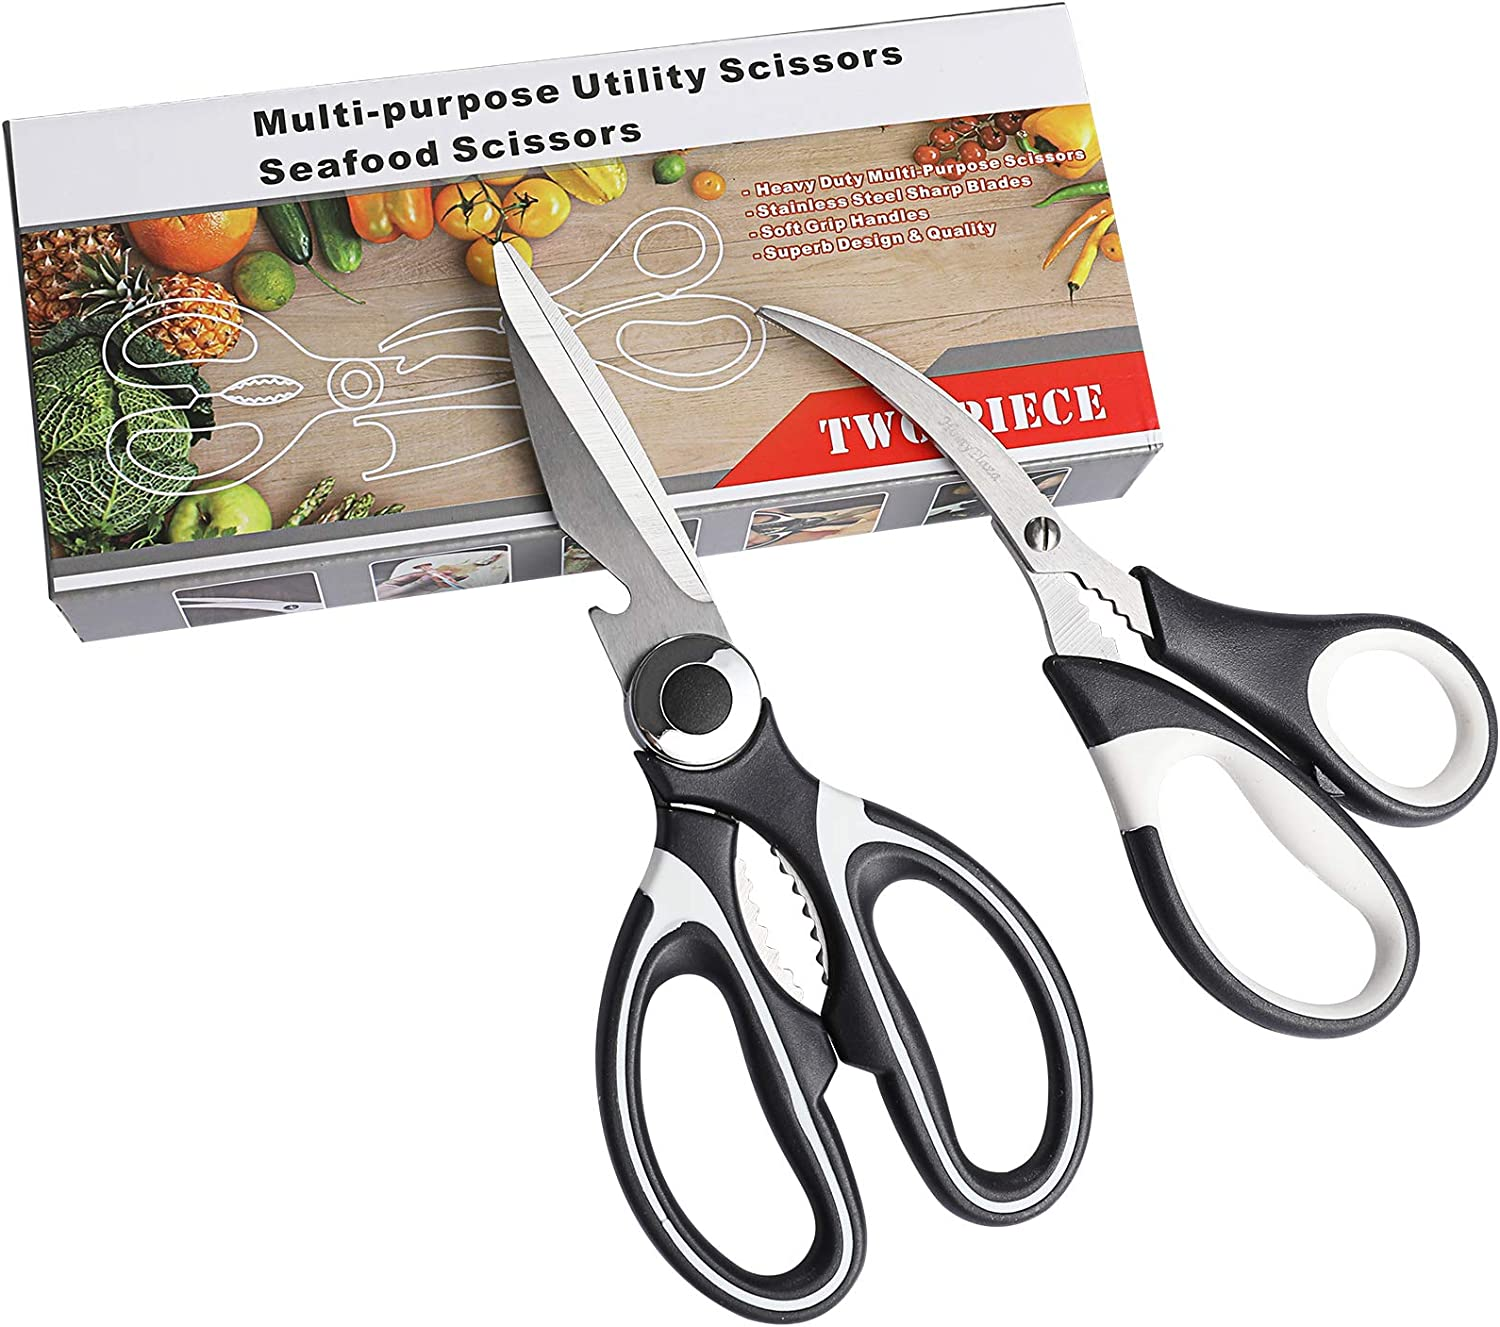 Homyplaza 2Pack Kitchen Scissors Poultry Shears Heavy Duty Stainless Steel Multipurpose Utility Food Meat Vegetable Seafood Crab Scissors